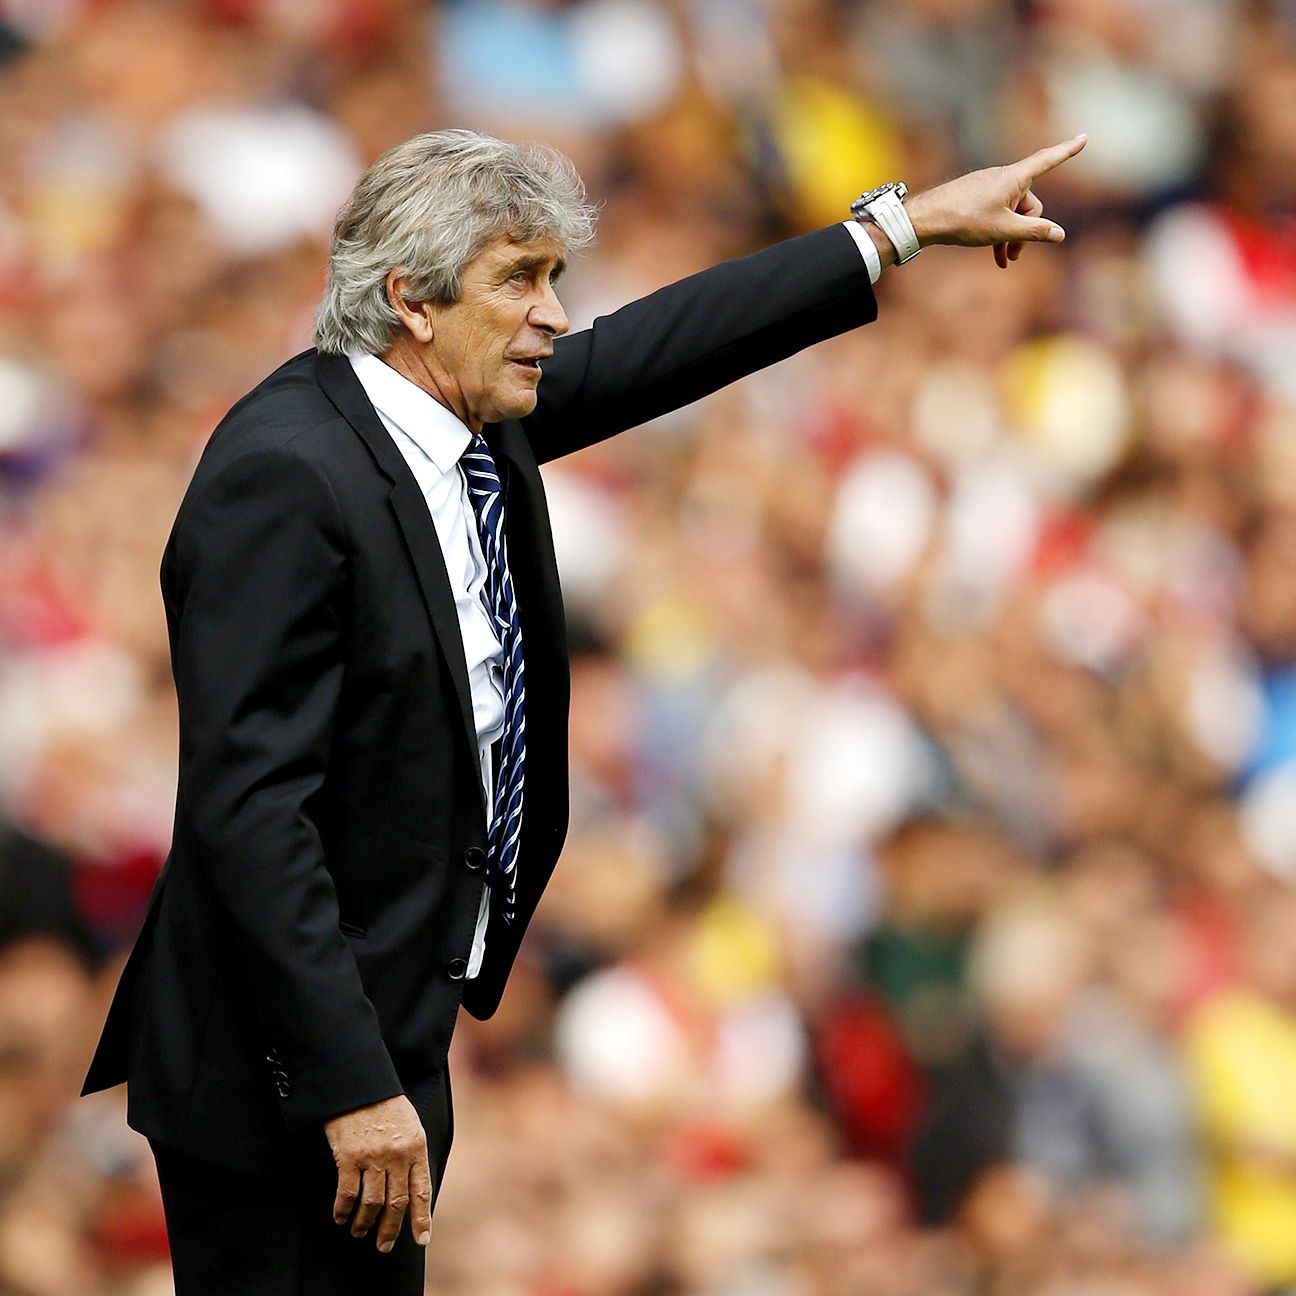 Manuel Pellegrini's Manchester City showed their physical side in Saturday's draw at Arsenal.